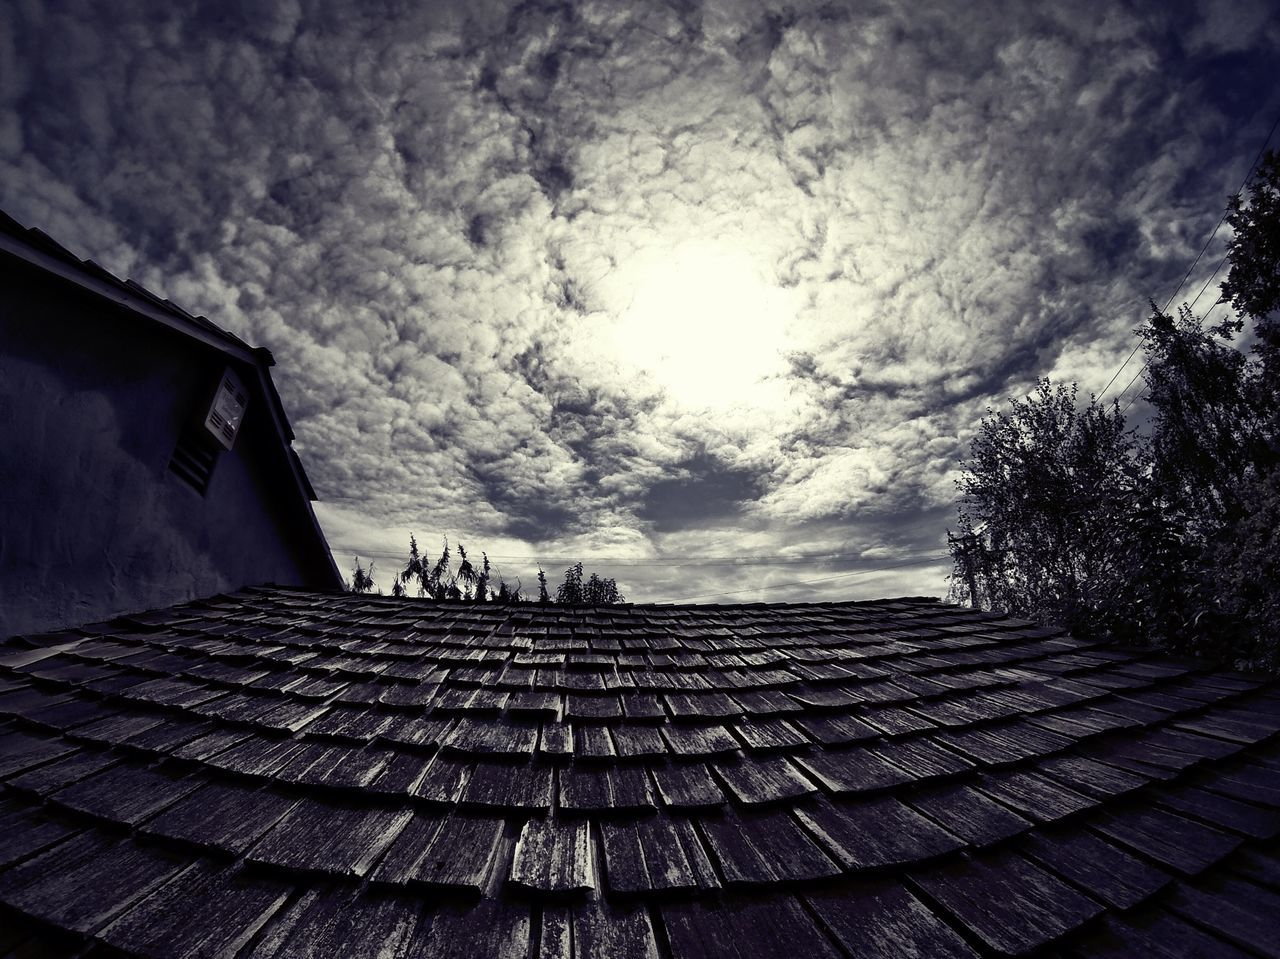 Low angle view of house roof against cloudy sky